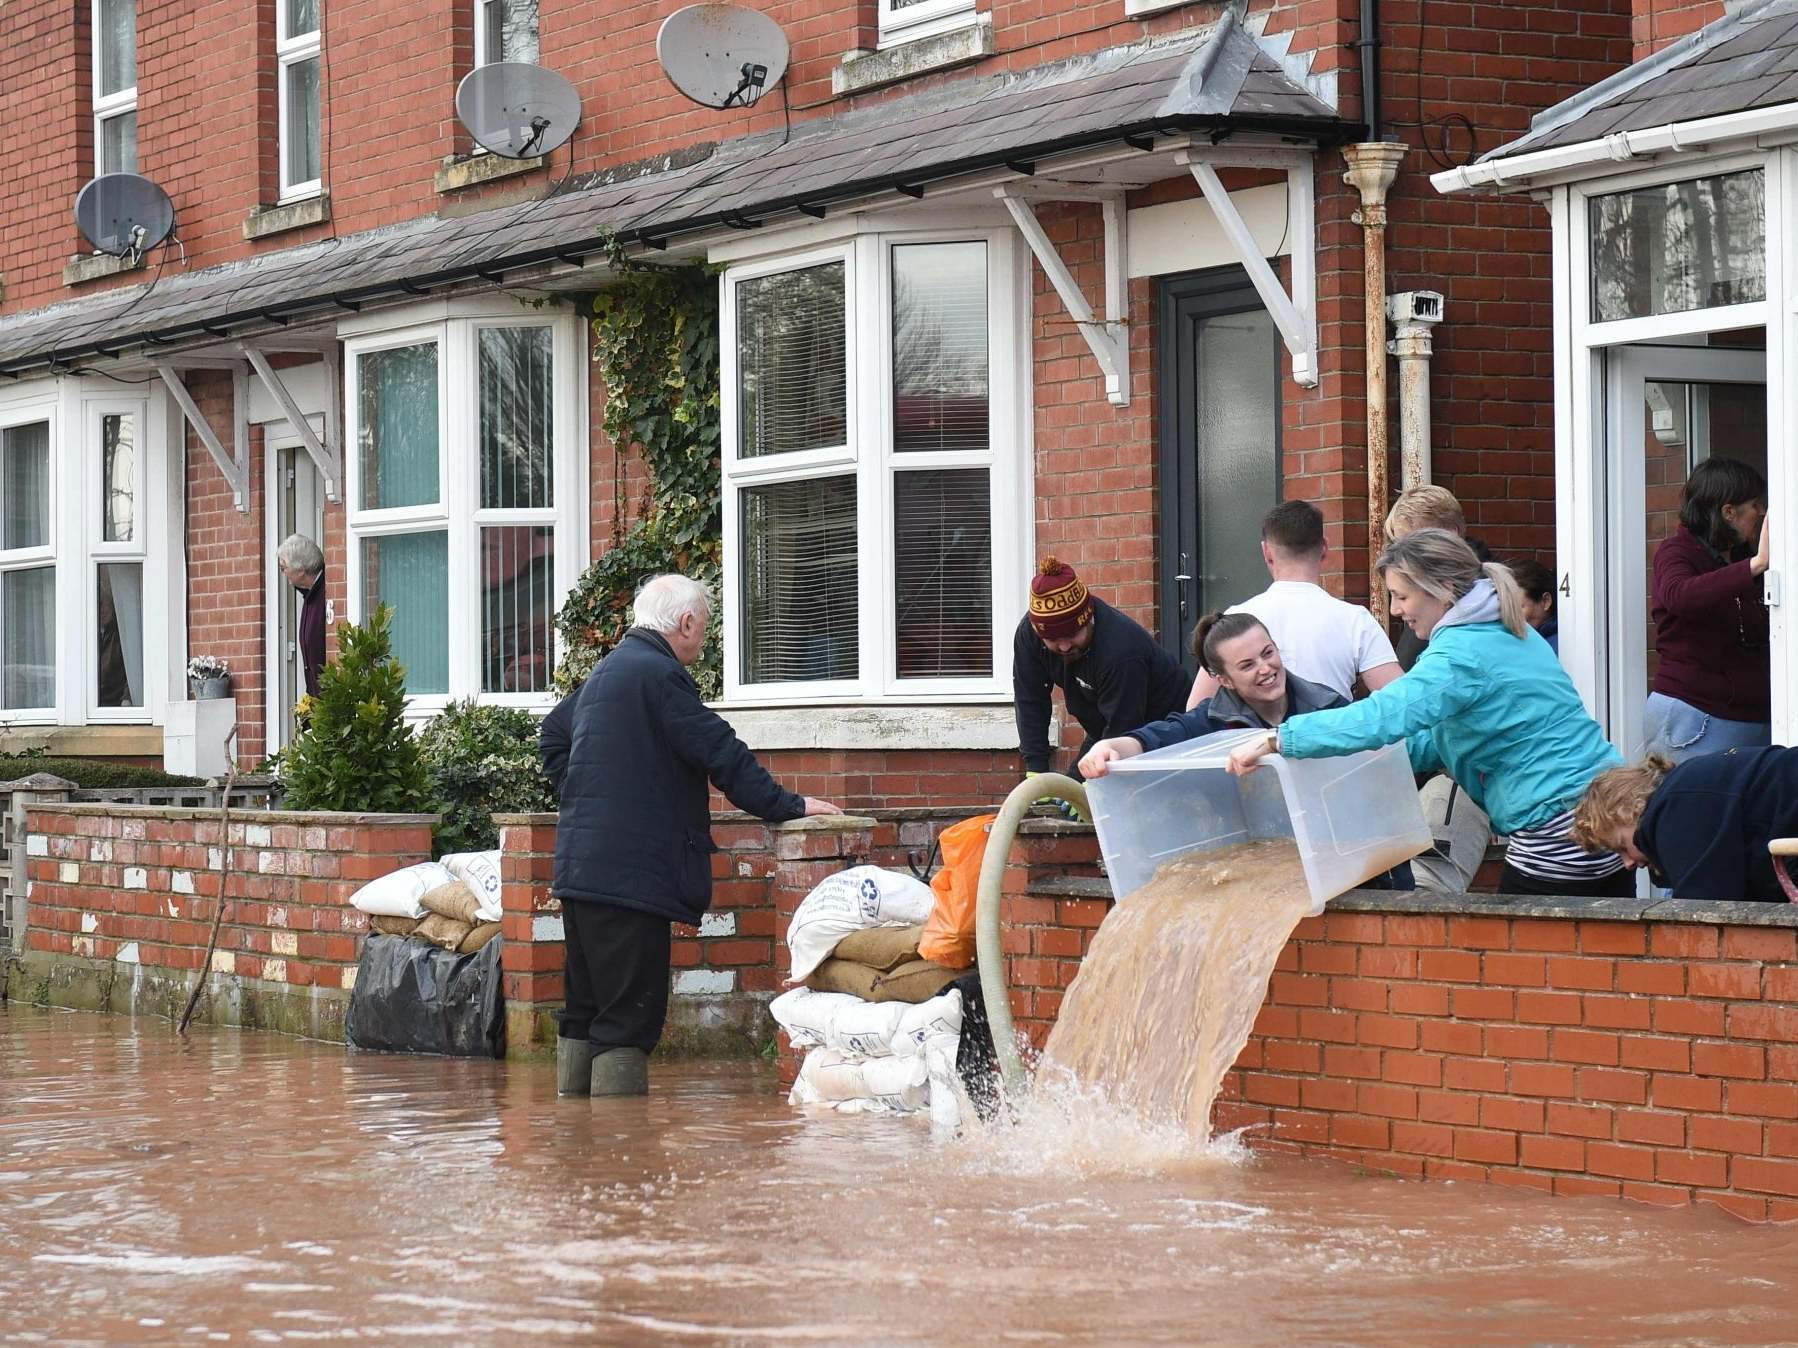 Heavier rainfall from storms '100% for certain' linked to climate crisis, experts warn